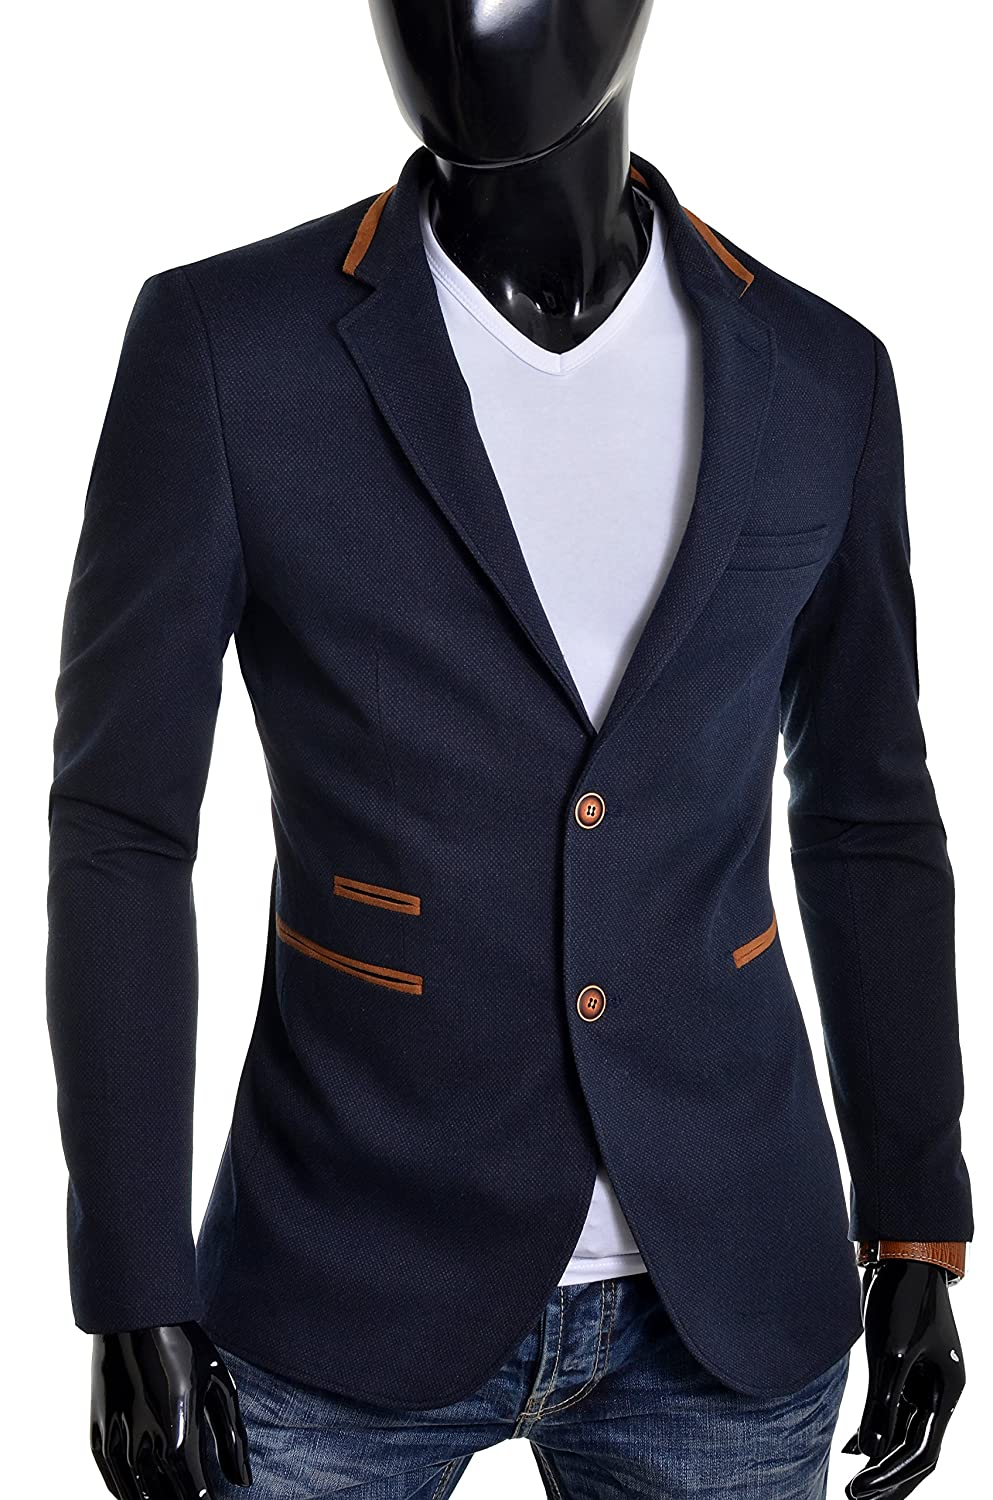 D&R Fashion Mens Blazer Jacket Blue Slim Fit Elbow Patches Smart Casual Sport at Amazon Mens Clothing store: